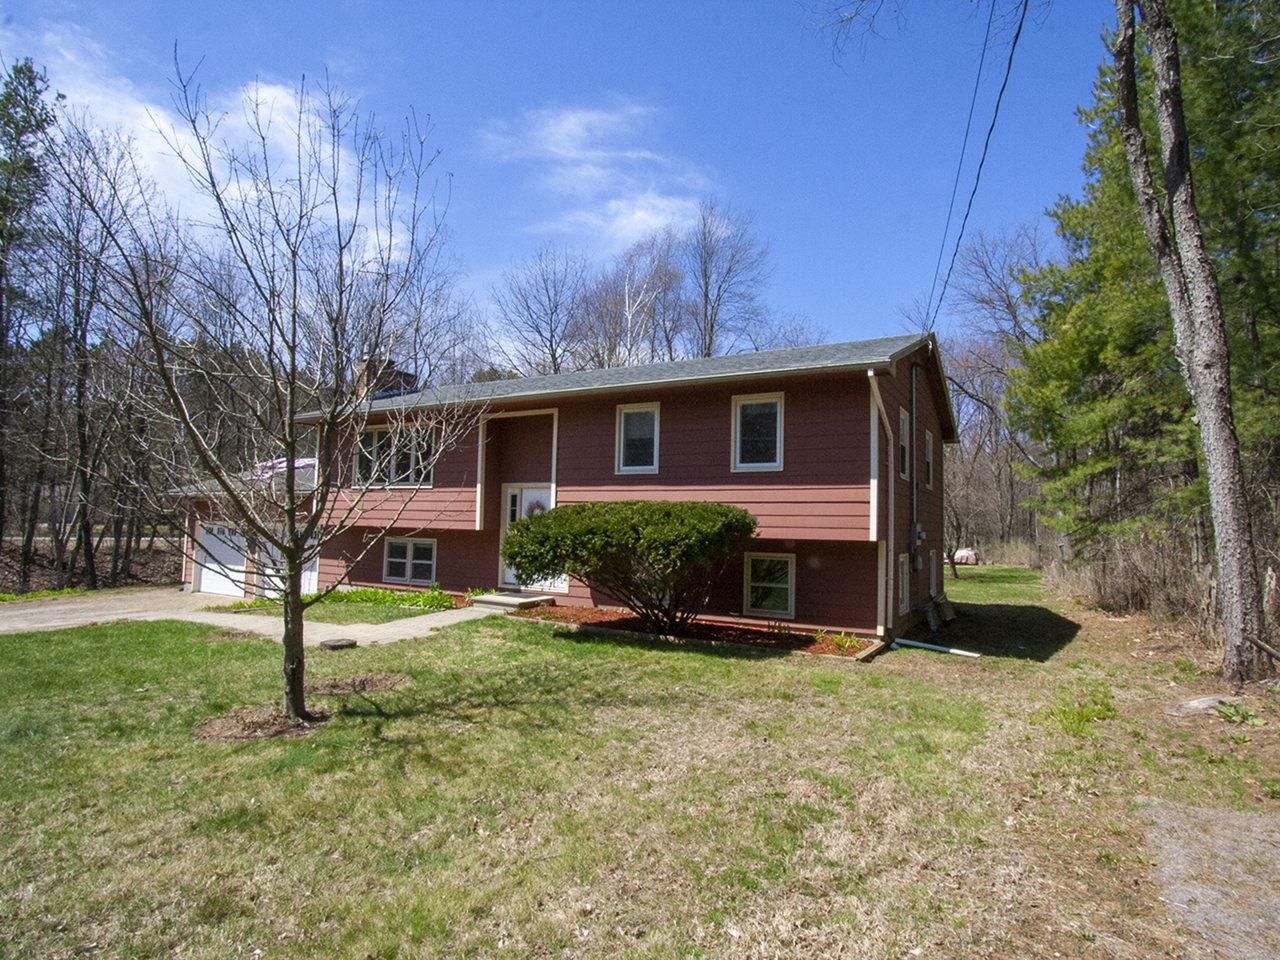 "The heavy lifting has been done with this raised ranch style duplex in ""Milchester"" (aka the convenient part of Colchester between Milton and South Hero). Off Route 2 and on your way to Niquette Bay State Park, you will find this lovely 2 acre property. Both front and back yards are huge and level, and a little seasonal stream runs the length of the property. The current owner has taken care of many important updates inside and out over the past 5 years, including a brand new roof just completed in April 2020. Full list of updates available. The upper level of the home is a warm and cozy 3-bedroom, 1-bathroom unit with a lovely enclosed porch and sunny deck. The lower level unit has 2 bedrooms and 1 bathroom, and is ready for the next owner's updates - it is a blank slate! Both have gas fireplace inserts as well as ductless mini-split units, for flexibility with heating and cooling options. Each unit has two entry points, with key-less lock systems for convenience and security. The two-car garage is currently shared between the units and offers plenty of storage. You could throw quite the summer BBQ with the number of cars you could fit in this driveway, and the lawn games you could play are endless! Cap off your evening at the fire-pit near the stream for a perfect summer day. You are literally 3 minutes to Exit 17 on Interstate 89, so your commute will be quick and convenient!"